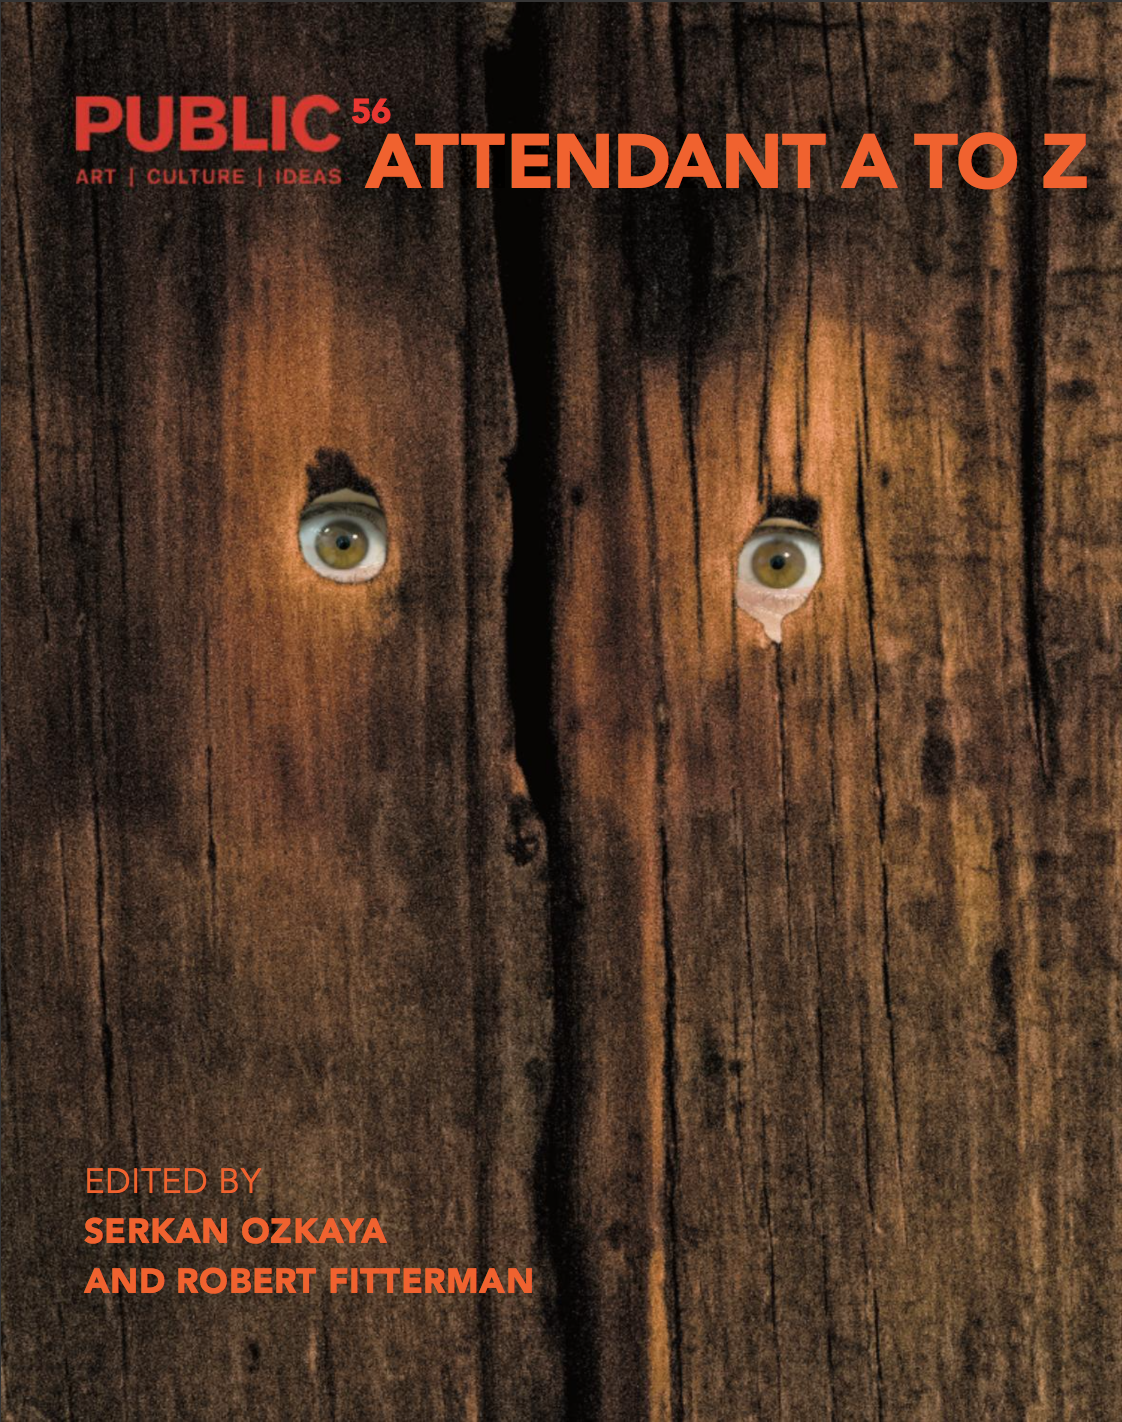 PUBLIC Journal: Attendant A to Z